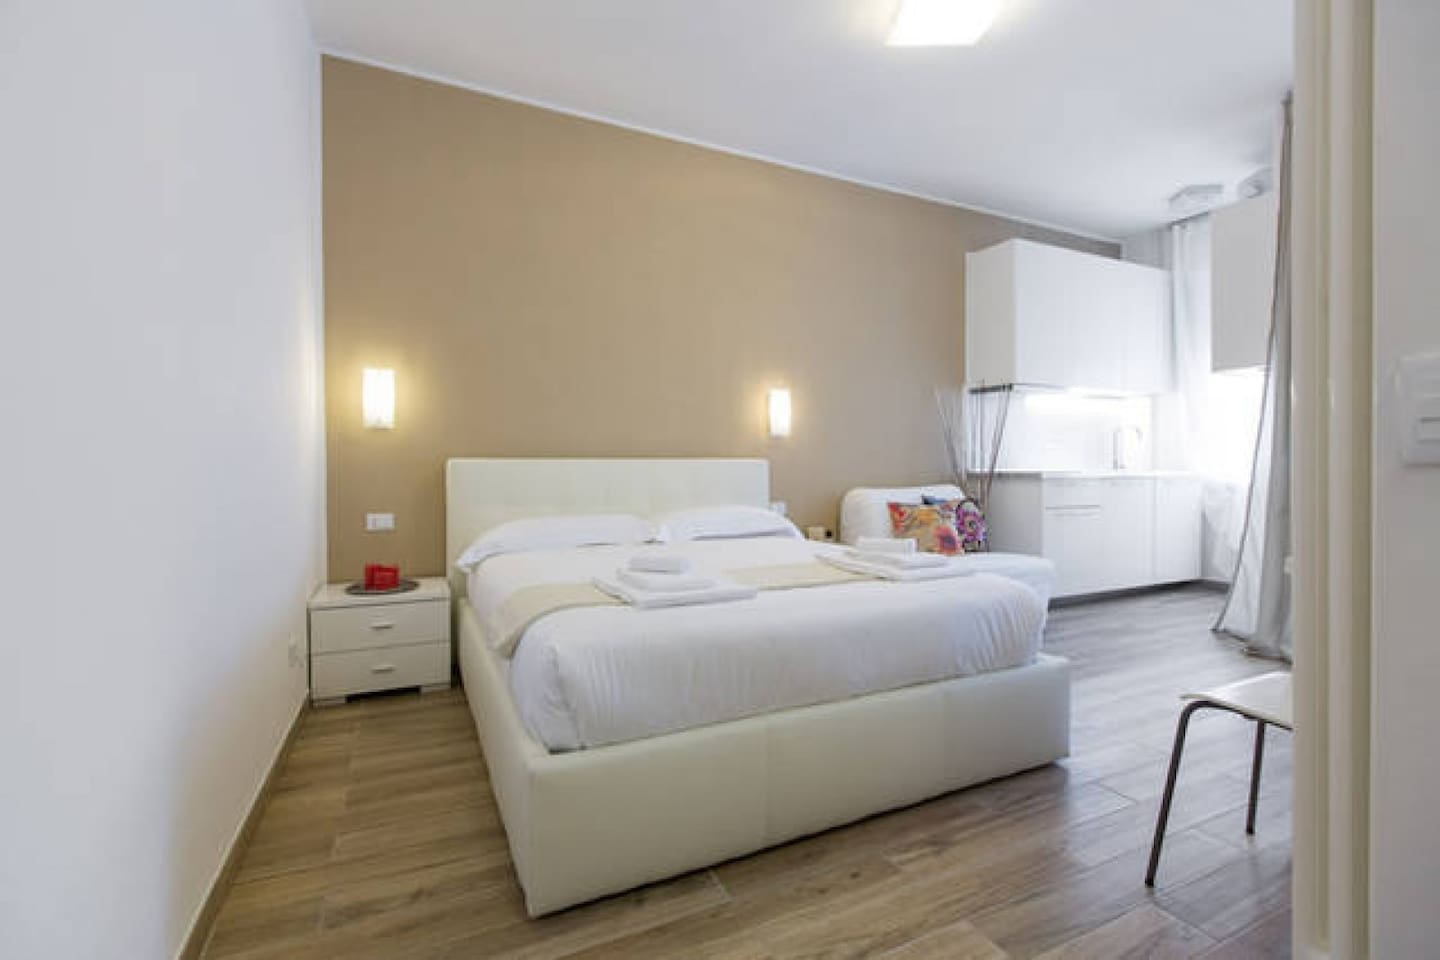 Guini Dream Apartment 22 - Milan